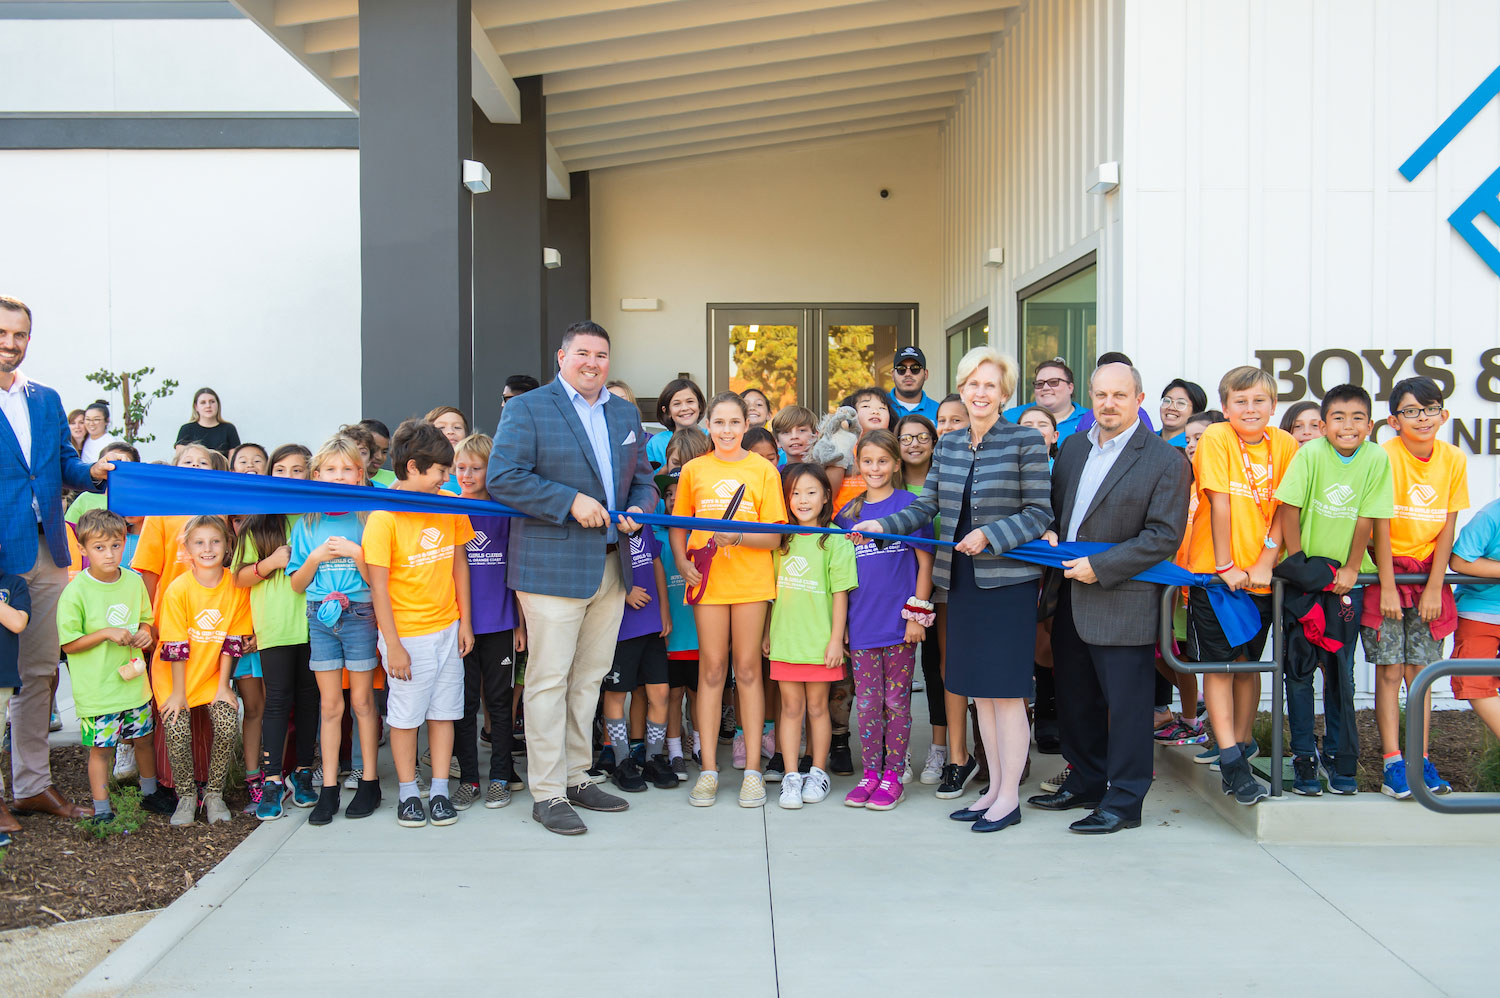 Boys & Girls Club ribbon cutting